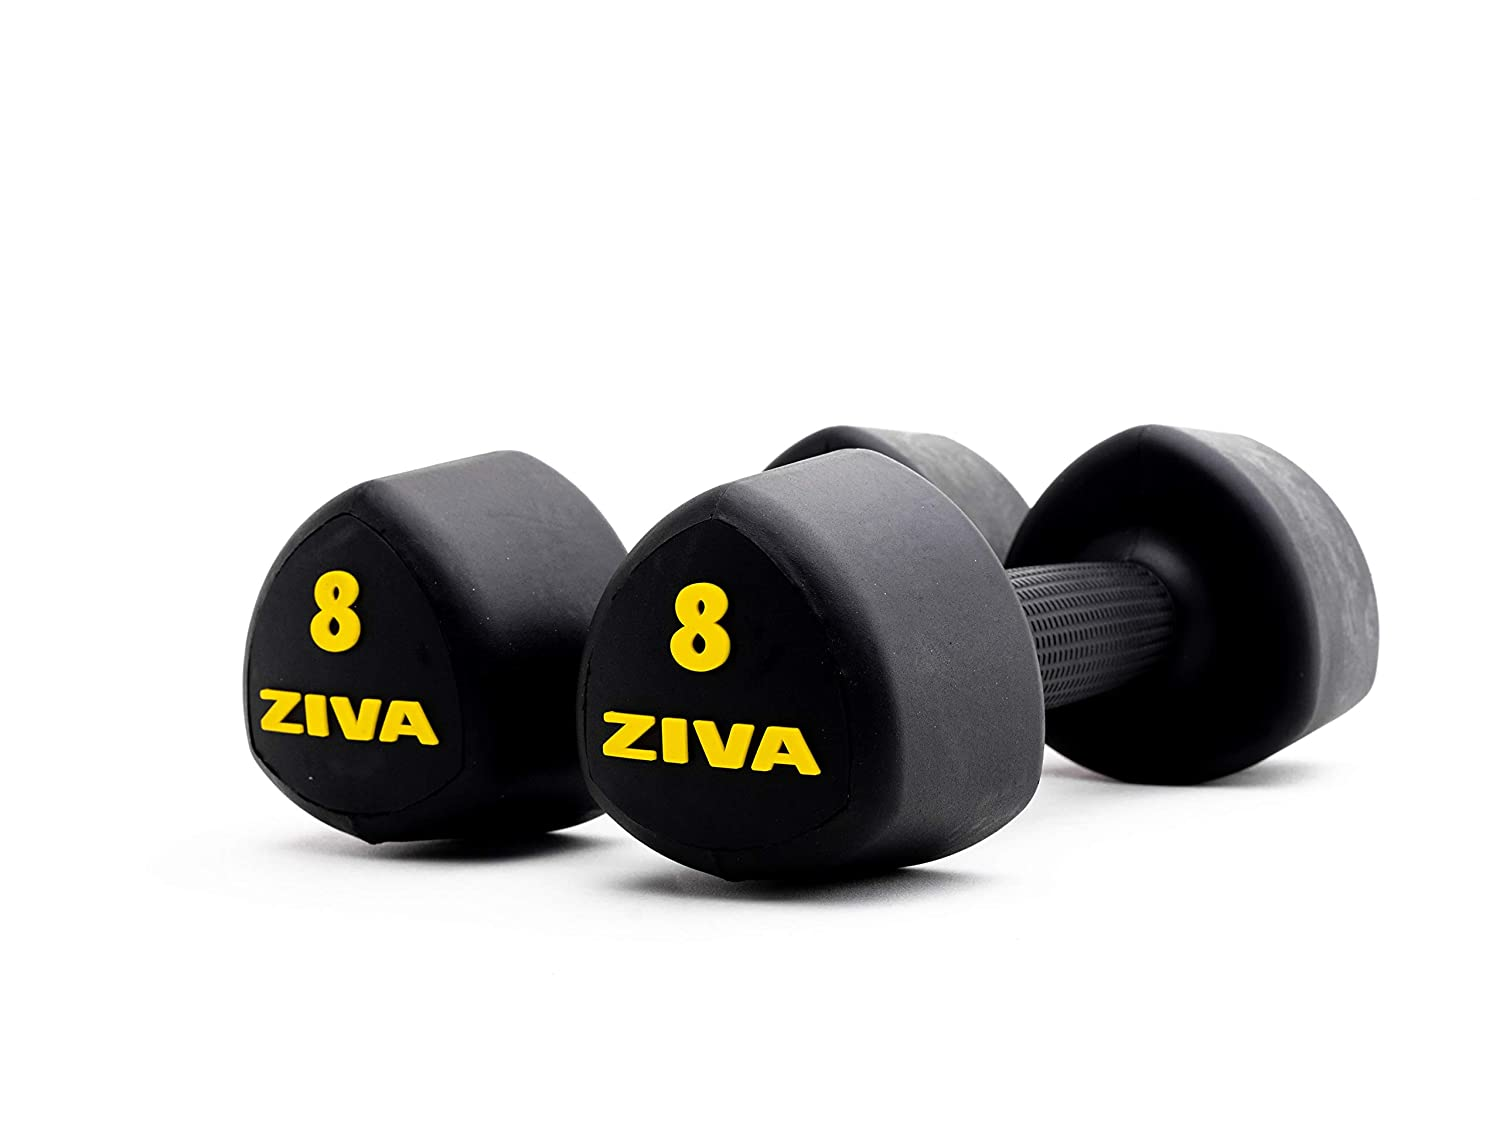 ZIVA EPS Virgin Rubber Steel Tribell Dumbbell Pairs – Multiple Sizes, 2-12 lb Pairs – Exercise Weights for Core and Strength Training – Ergonomic Non-Slip Comfort Grip